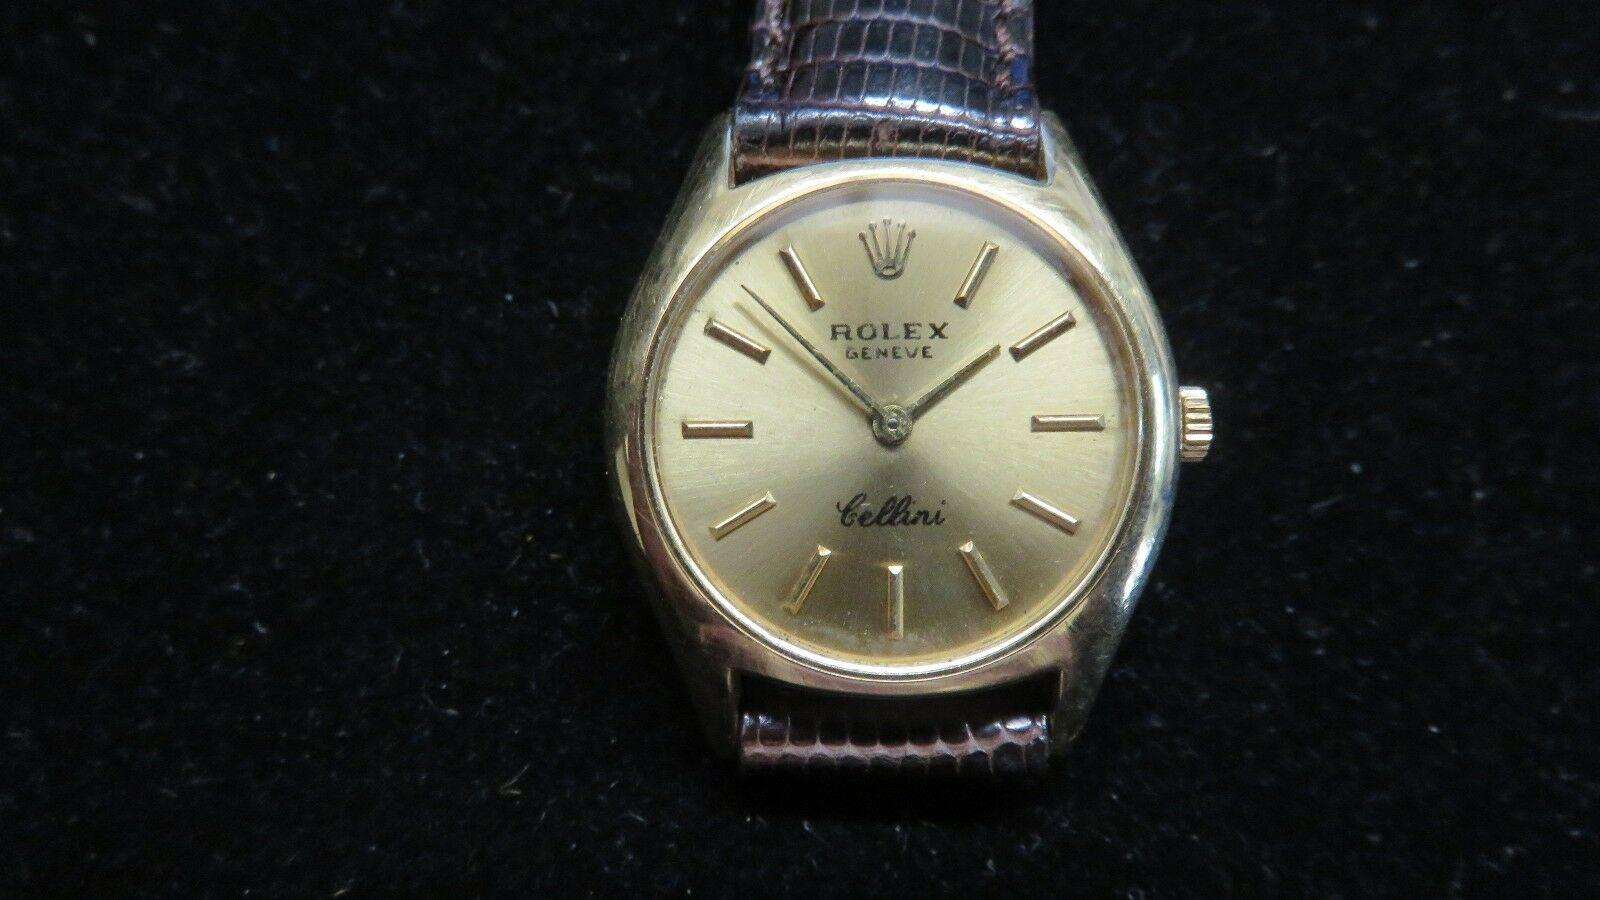 Vintage ROLEX Cellini~18K Solid Gold~Ref 3800~Mechanical Movement 25mm  Watch~WOW